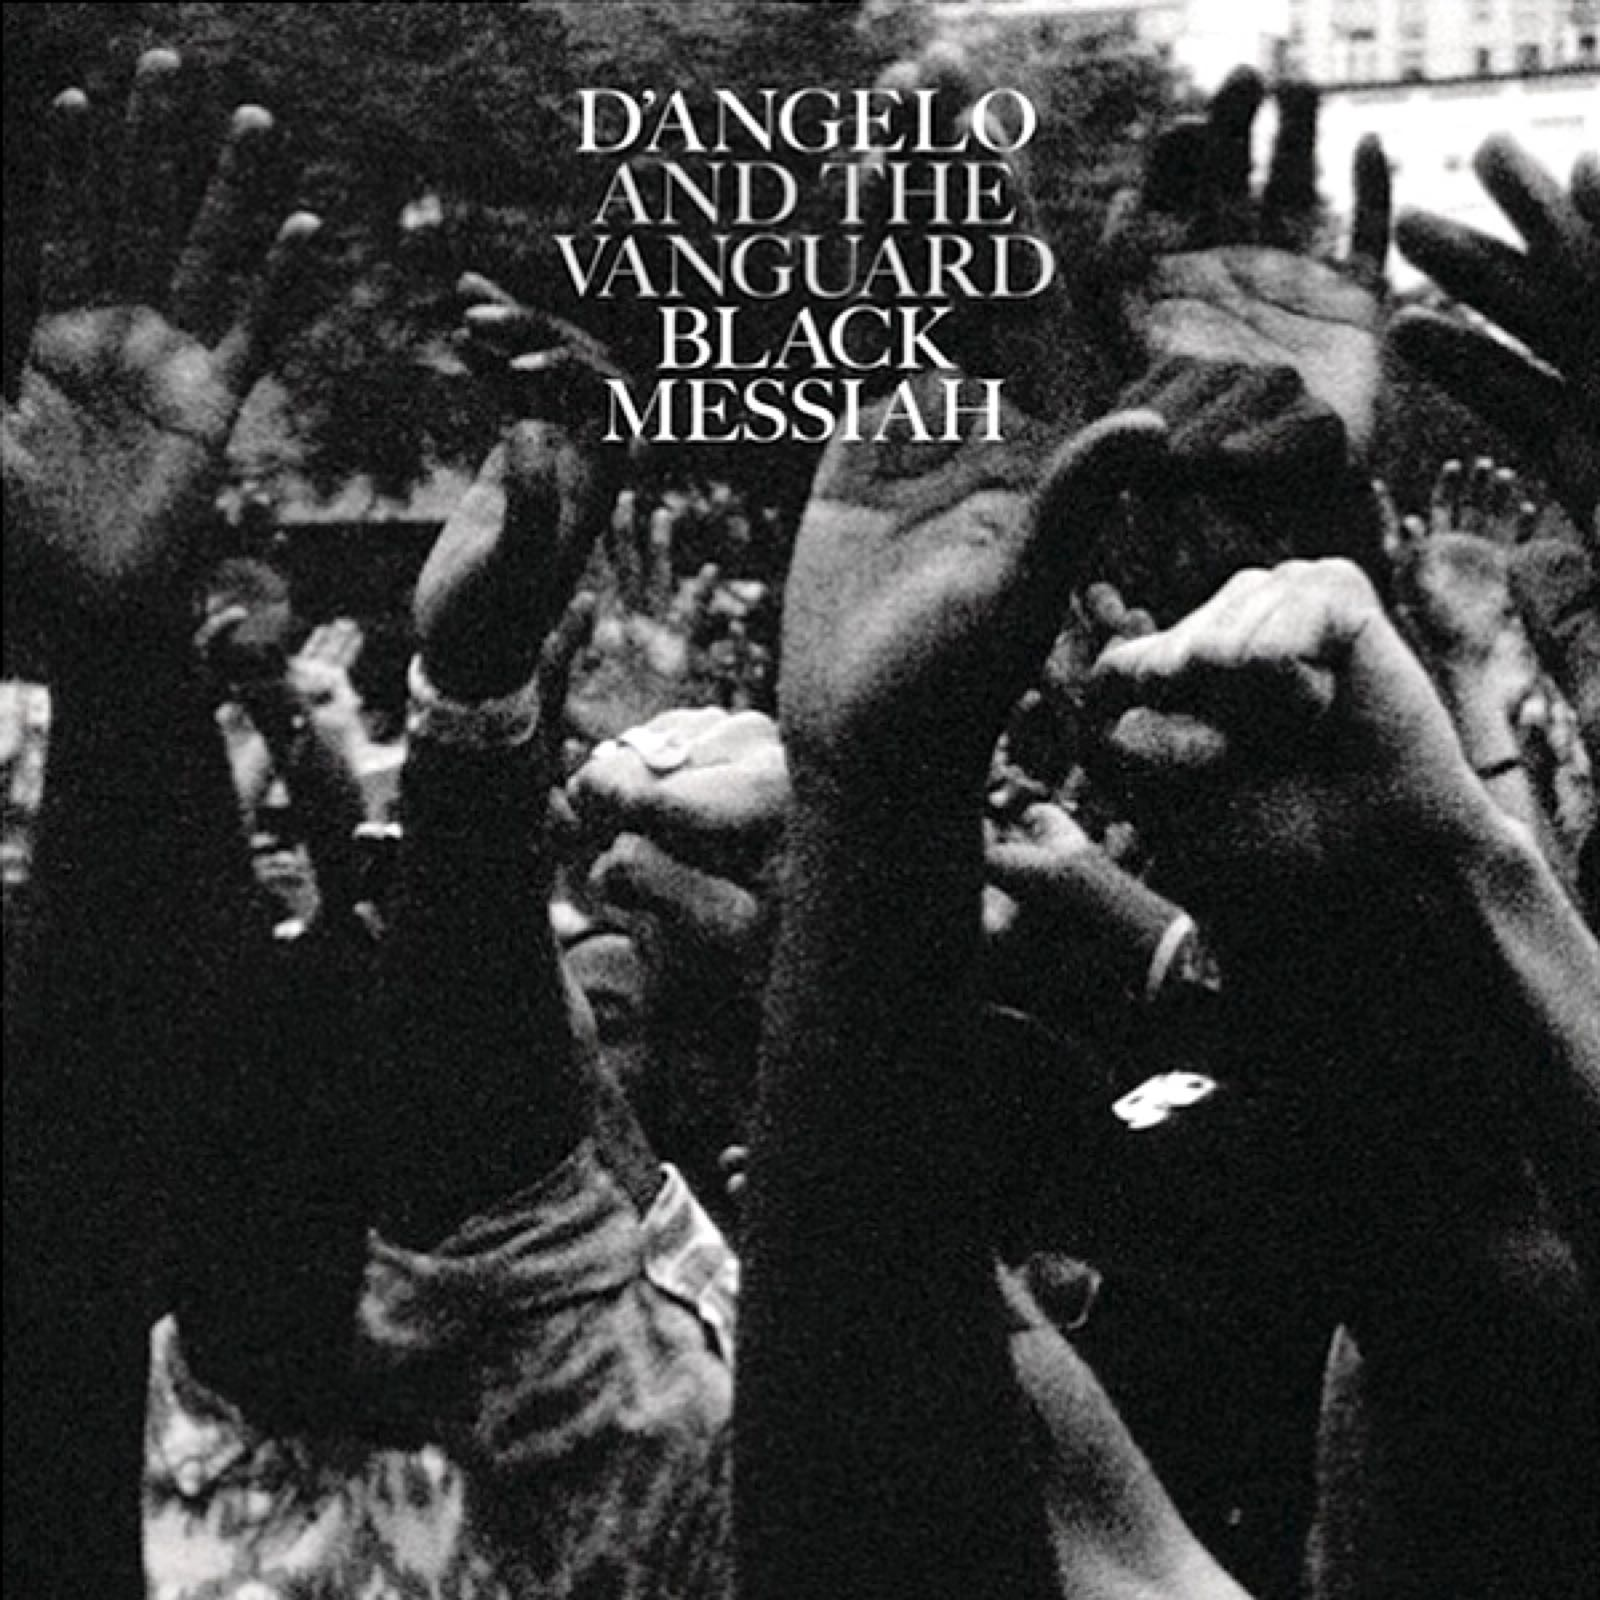 D'Angelo & The Vanguard - Black Messiah [2xLP]